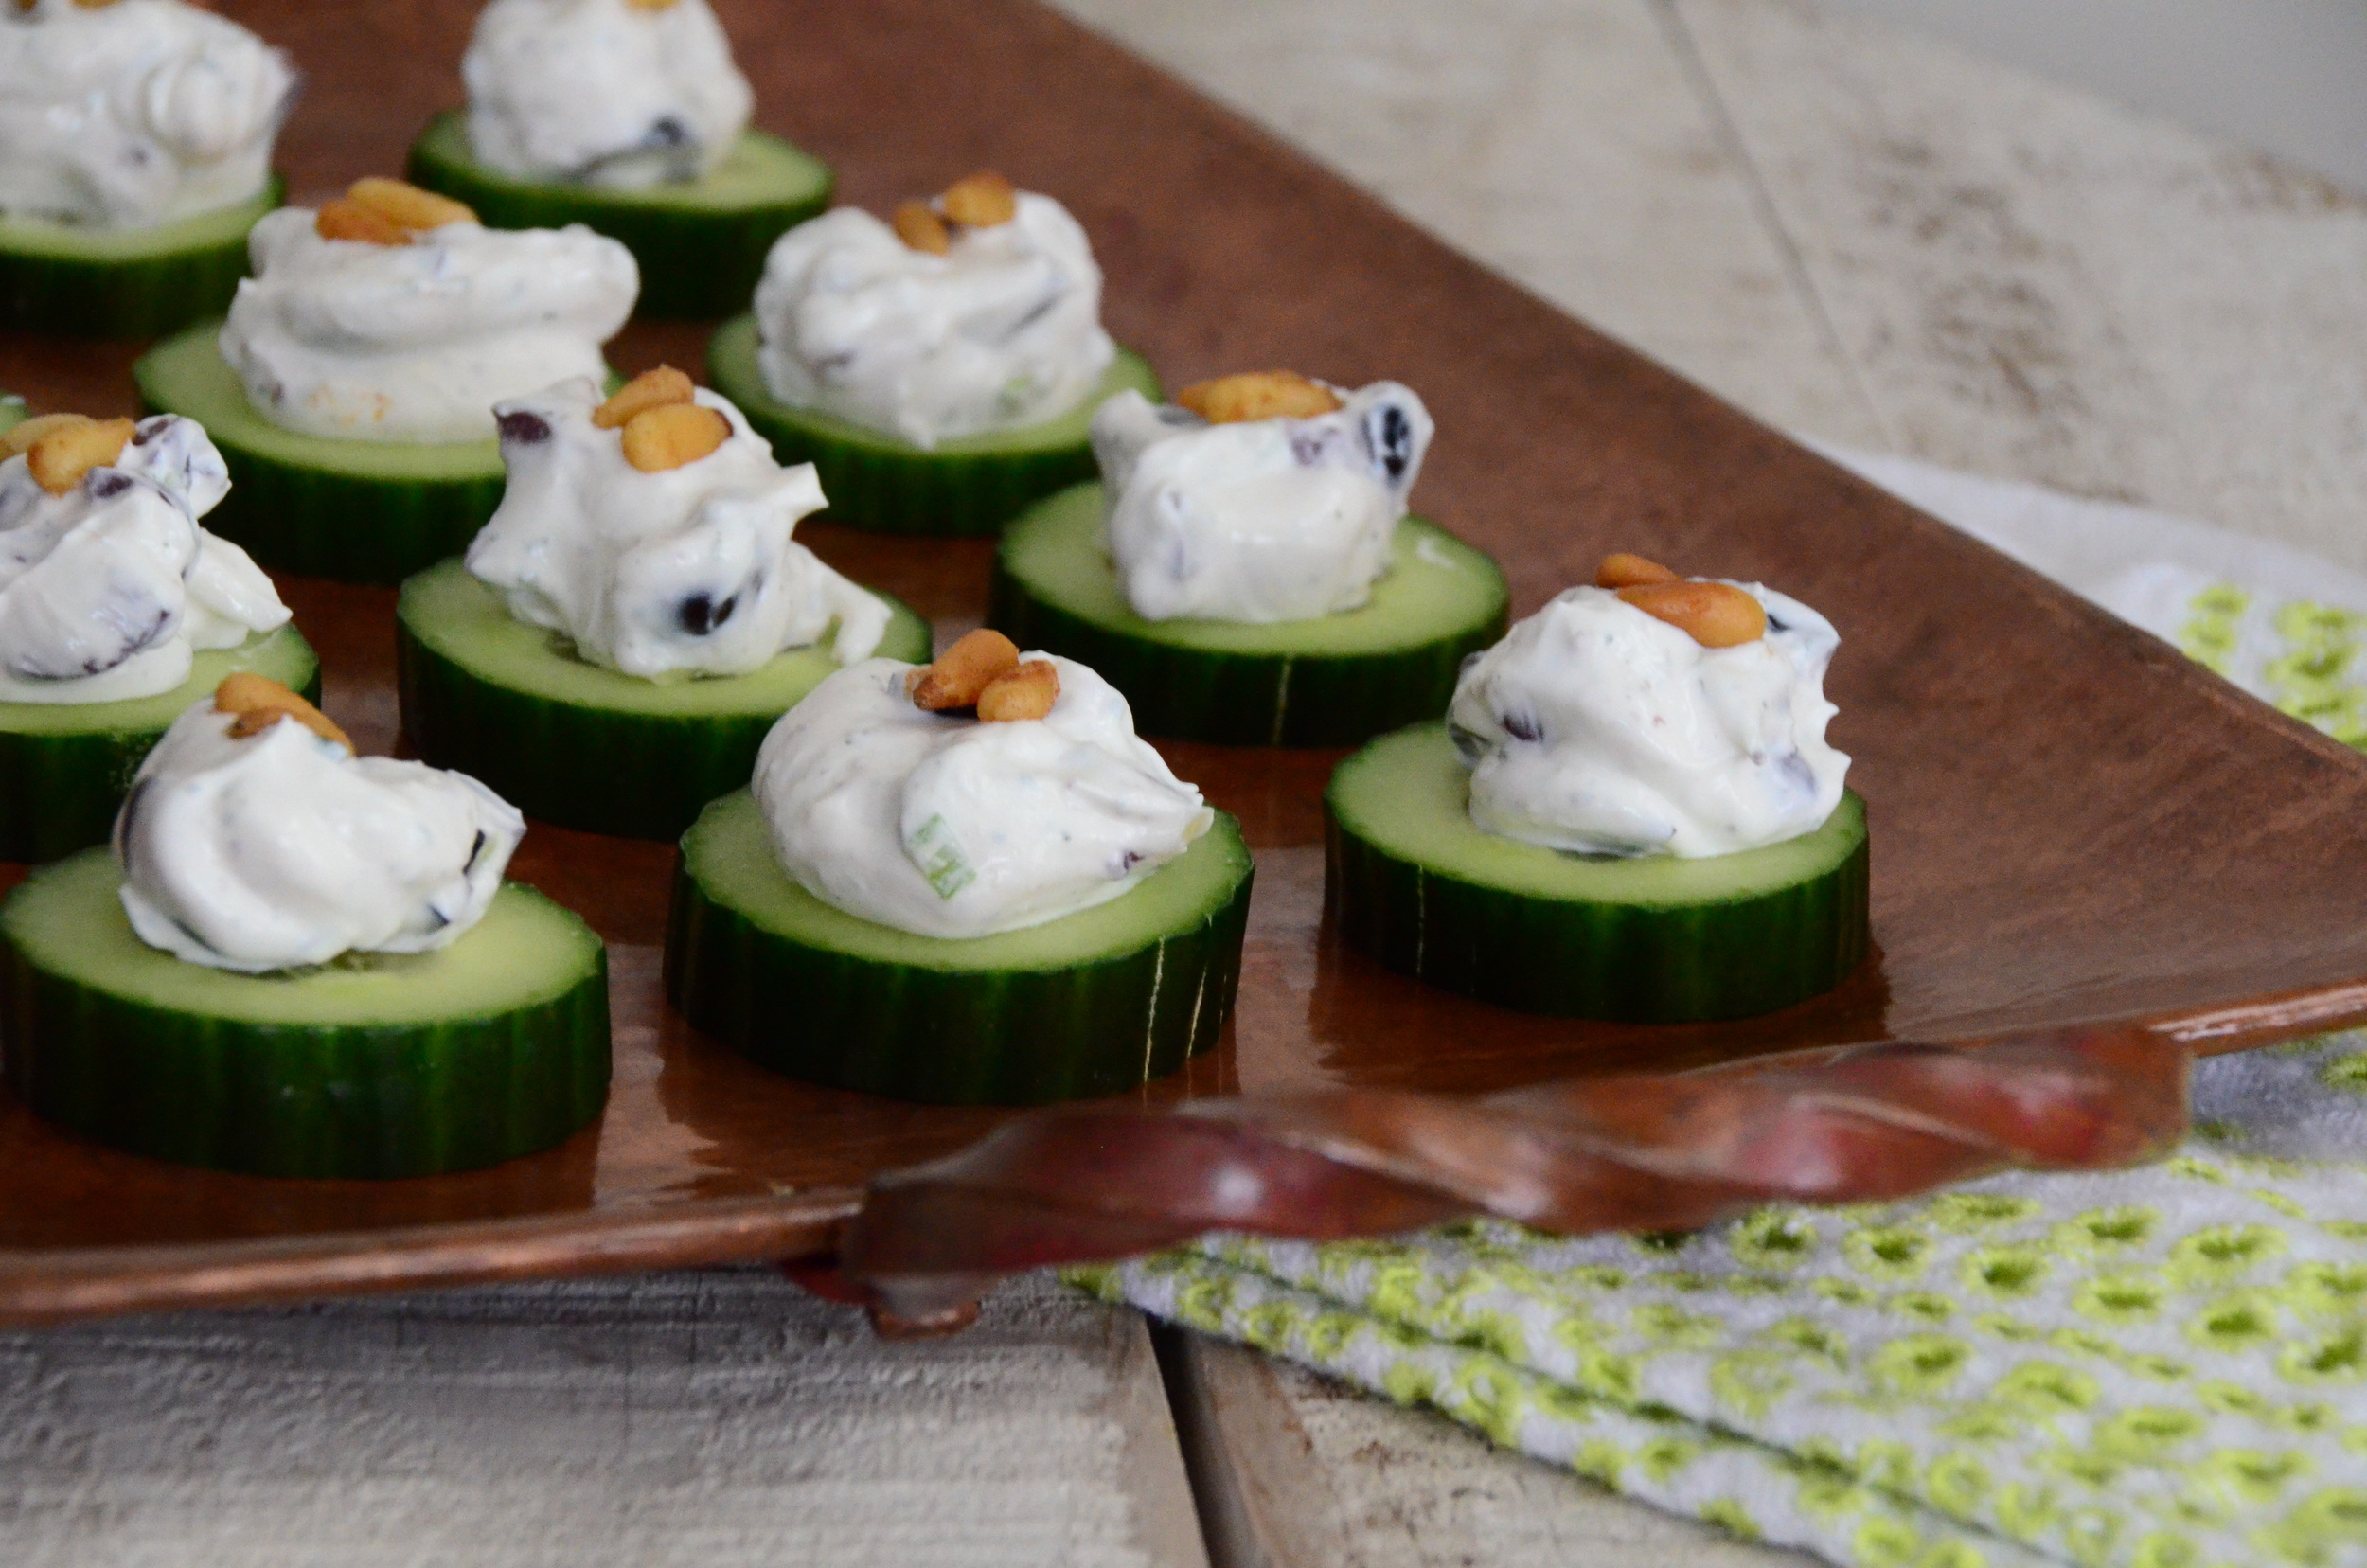 Maureen's Cucumber Bites with Olives and Labneh